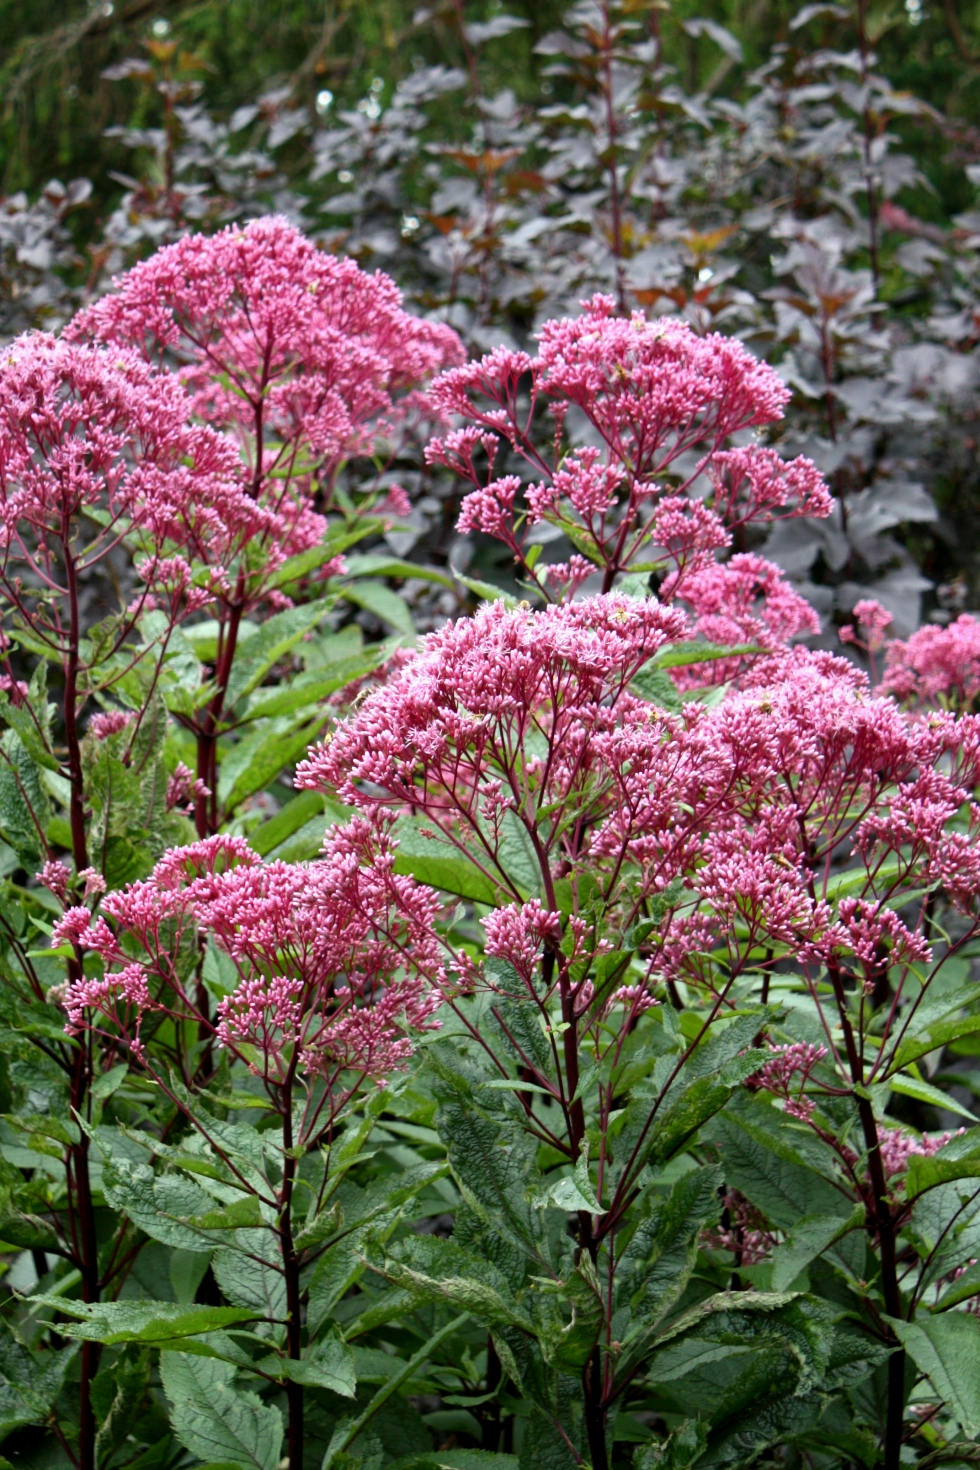 Eupatorium purpureum, Tintinhull, August 2012